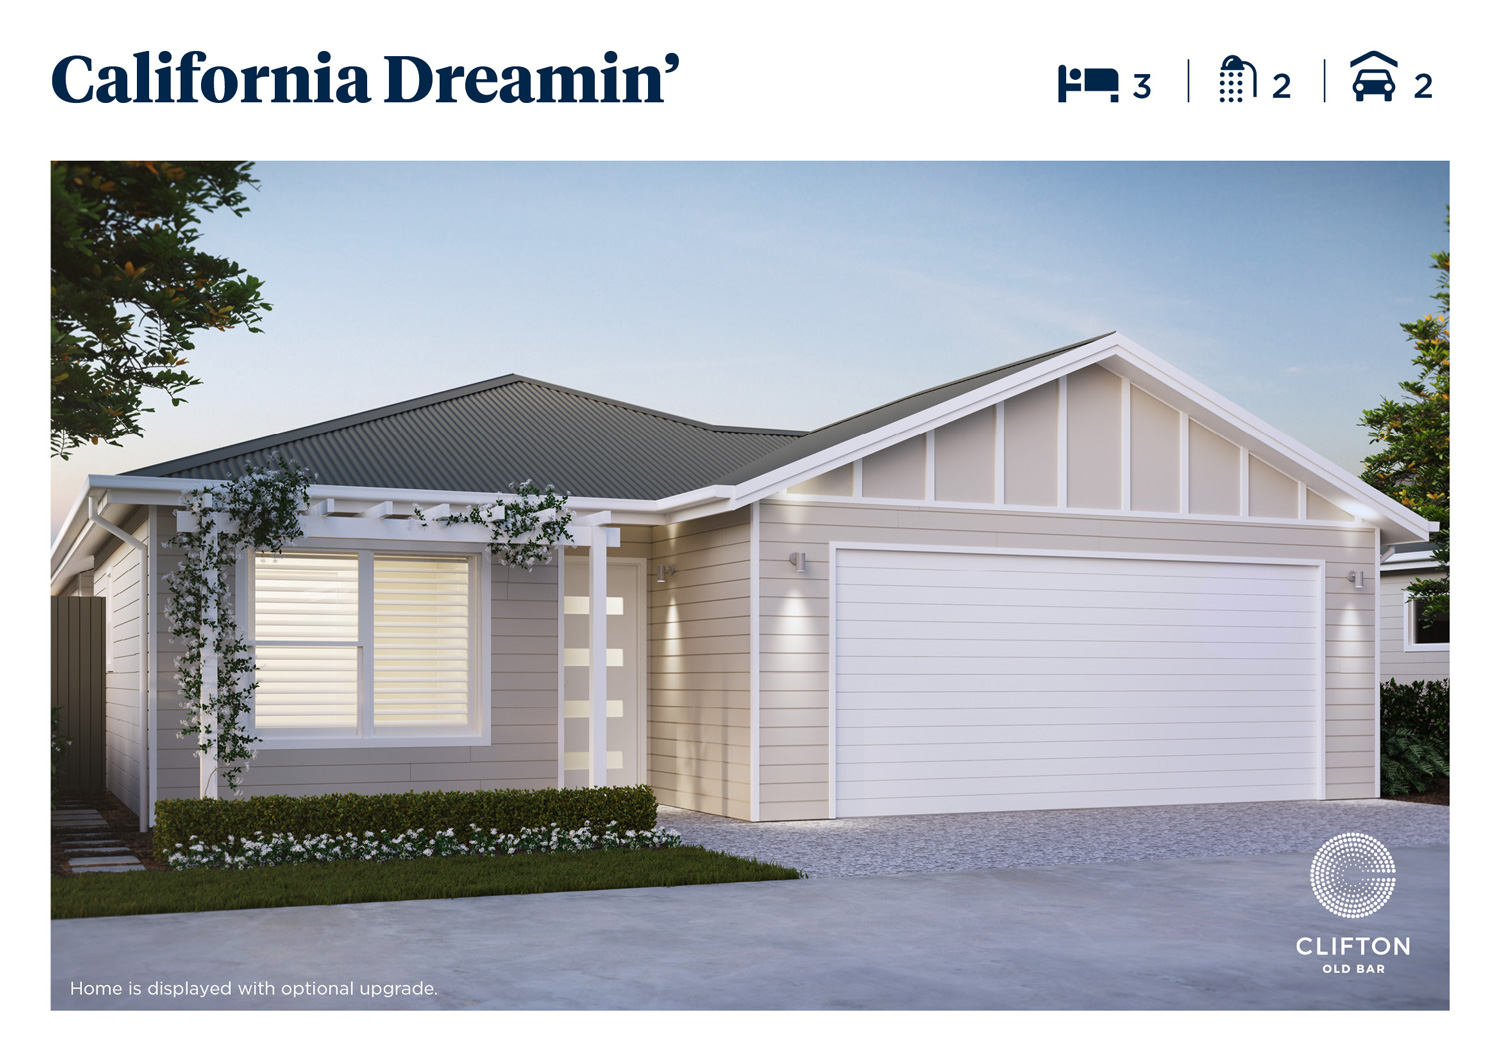 California Dreamin' large 3 bedroom home at Clifton Old Bar